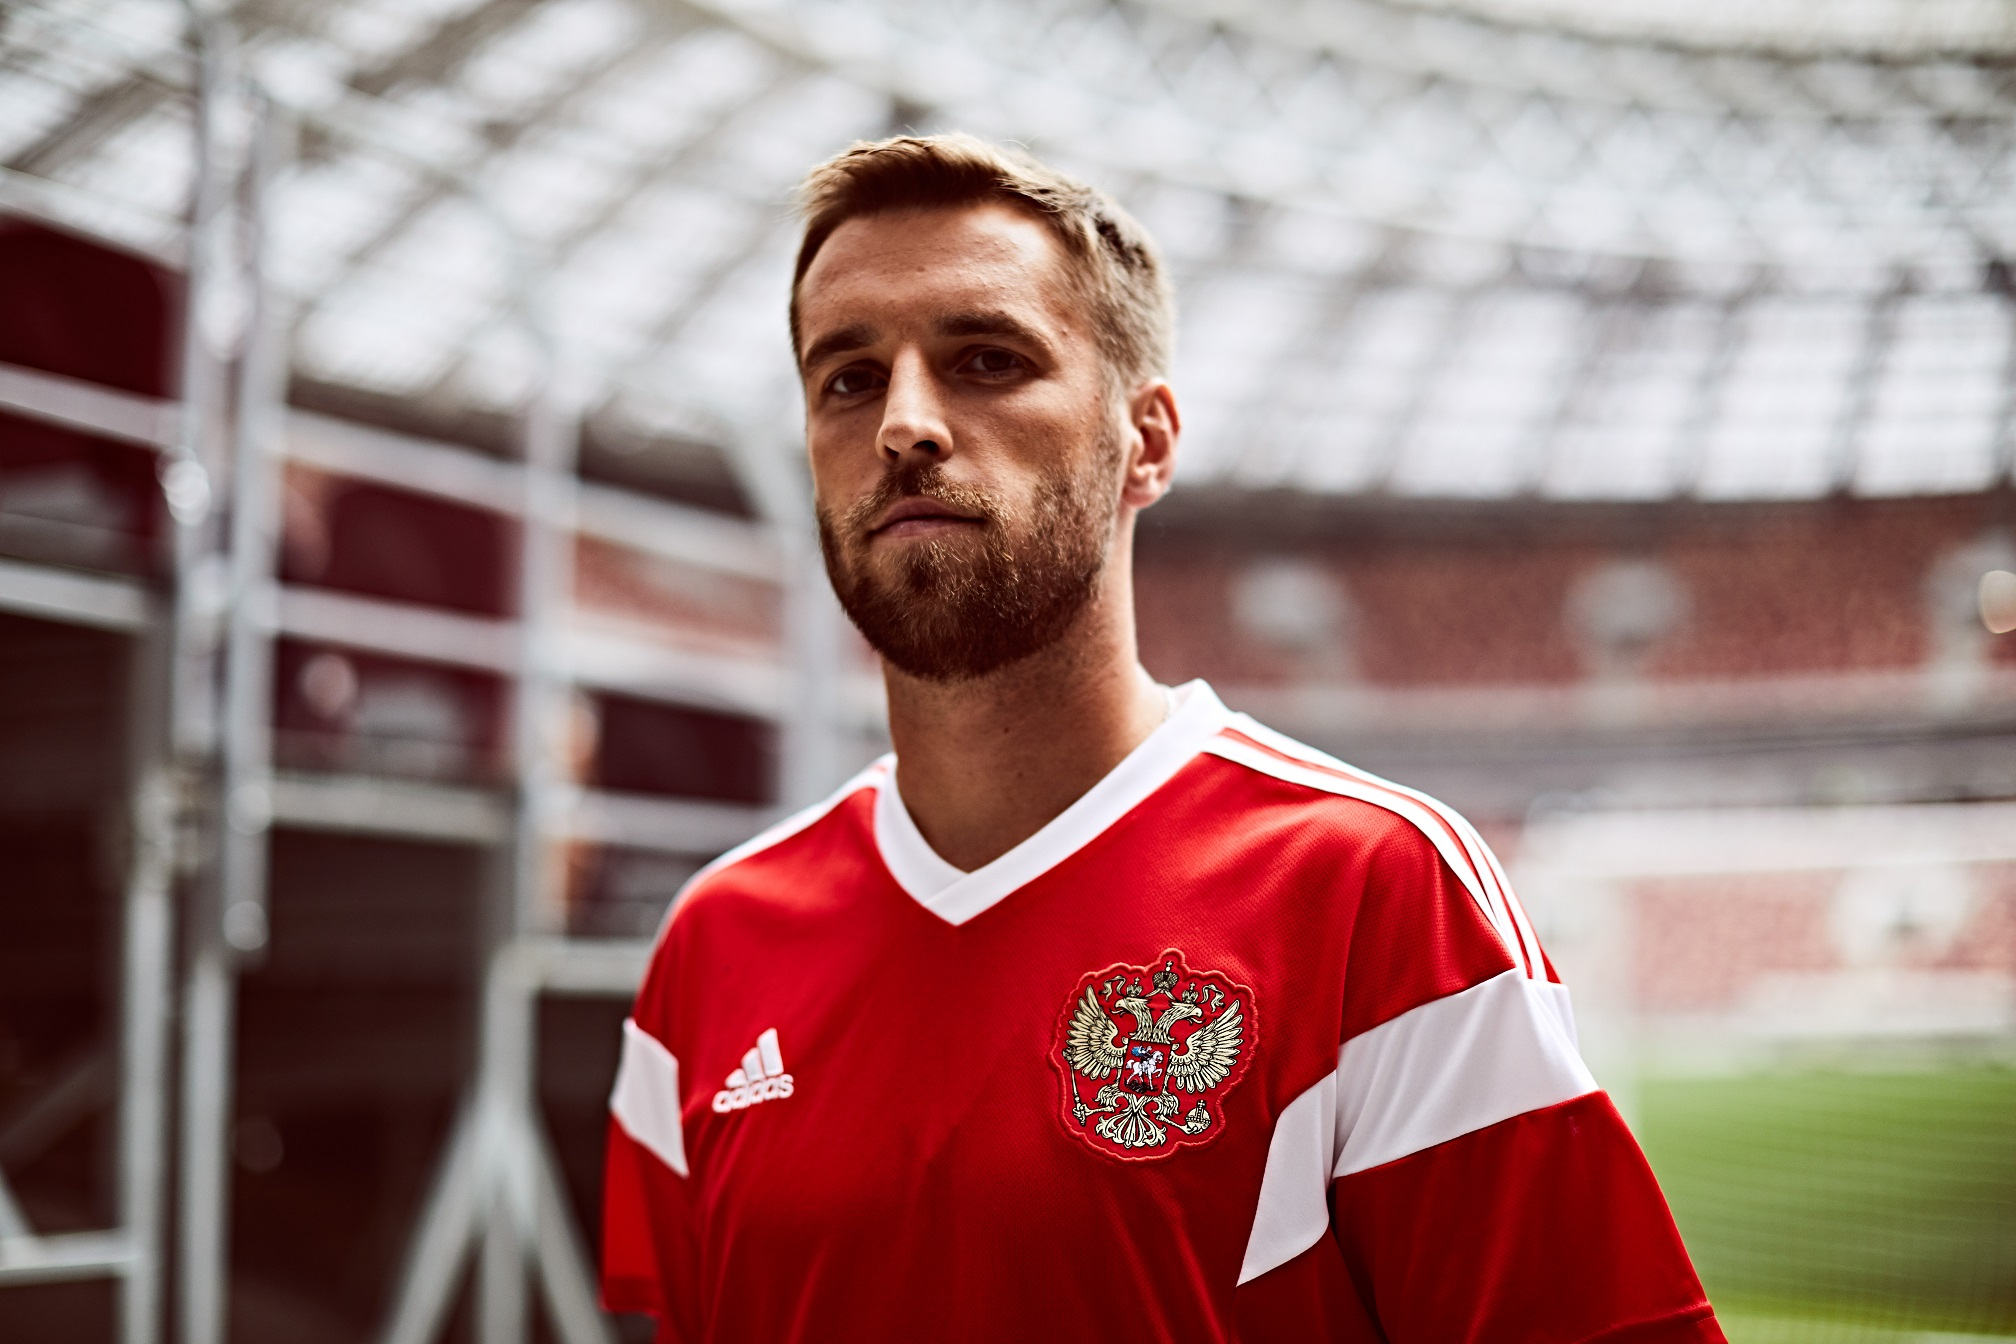 Russia's home shirt for the 2018 World Cup in Russia